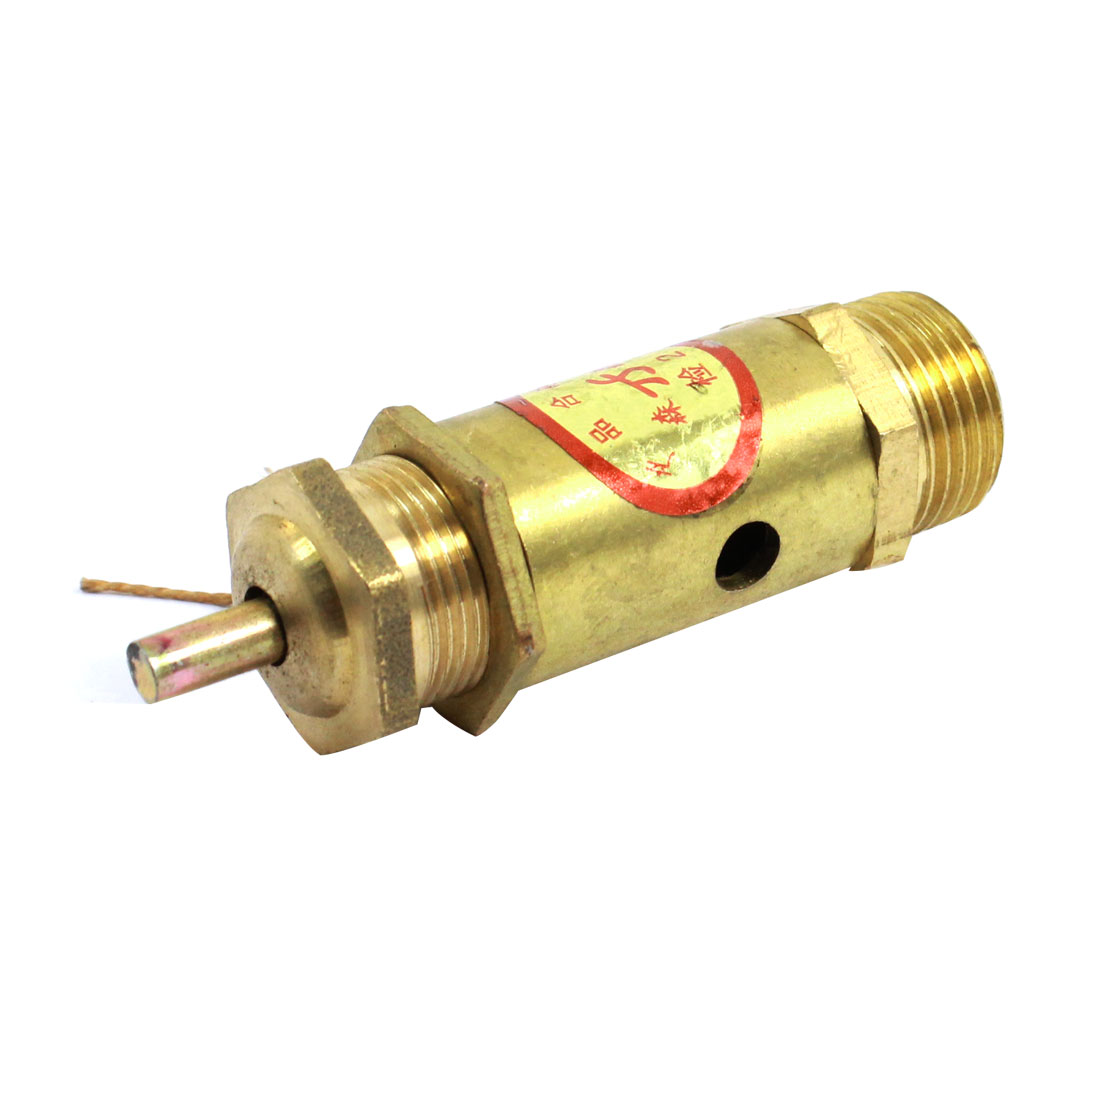 3/8 PT Male Thread Air Compressor Safety Pressure Relief Valve Gold Tone